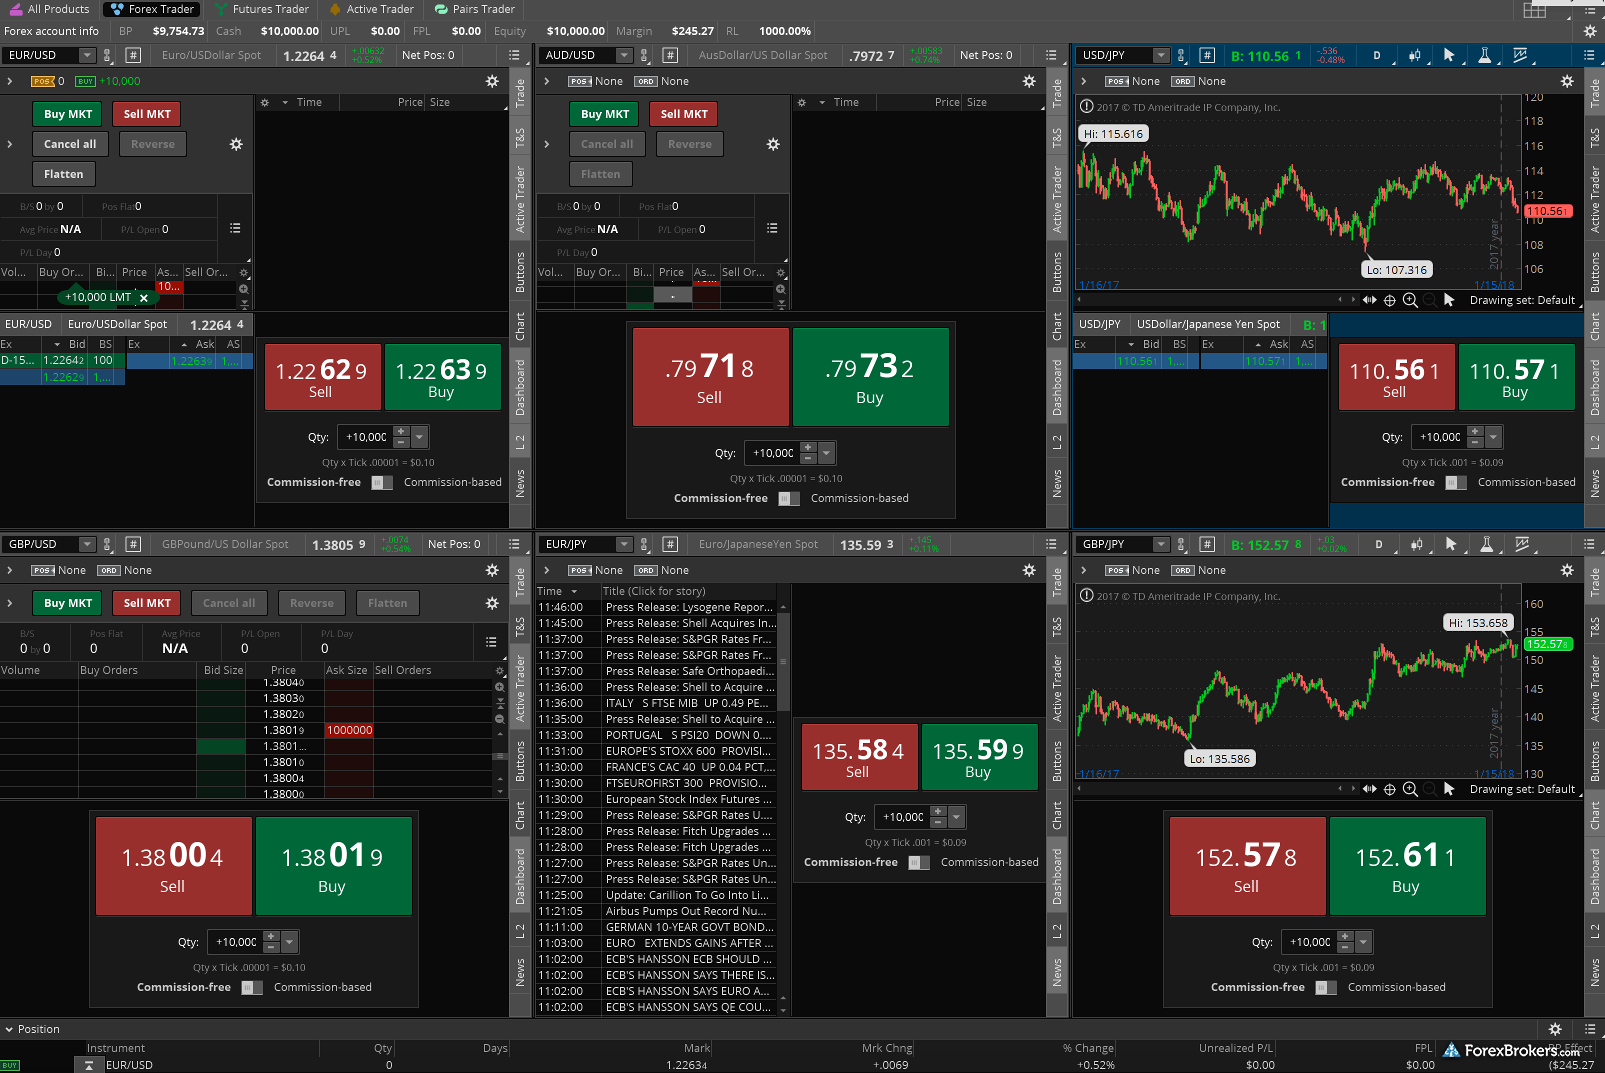 Thinkorswim forex review